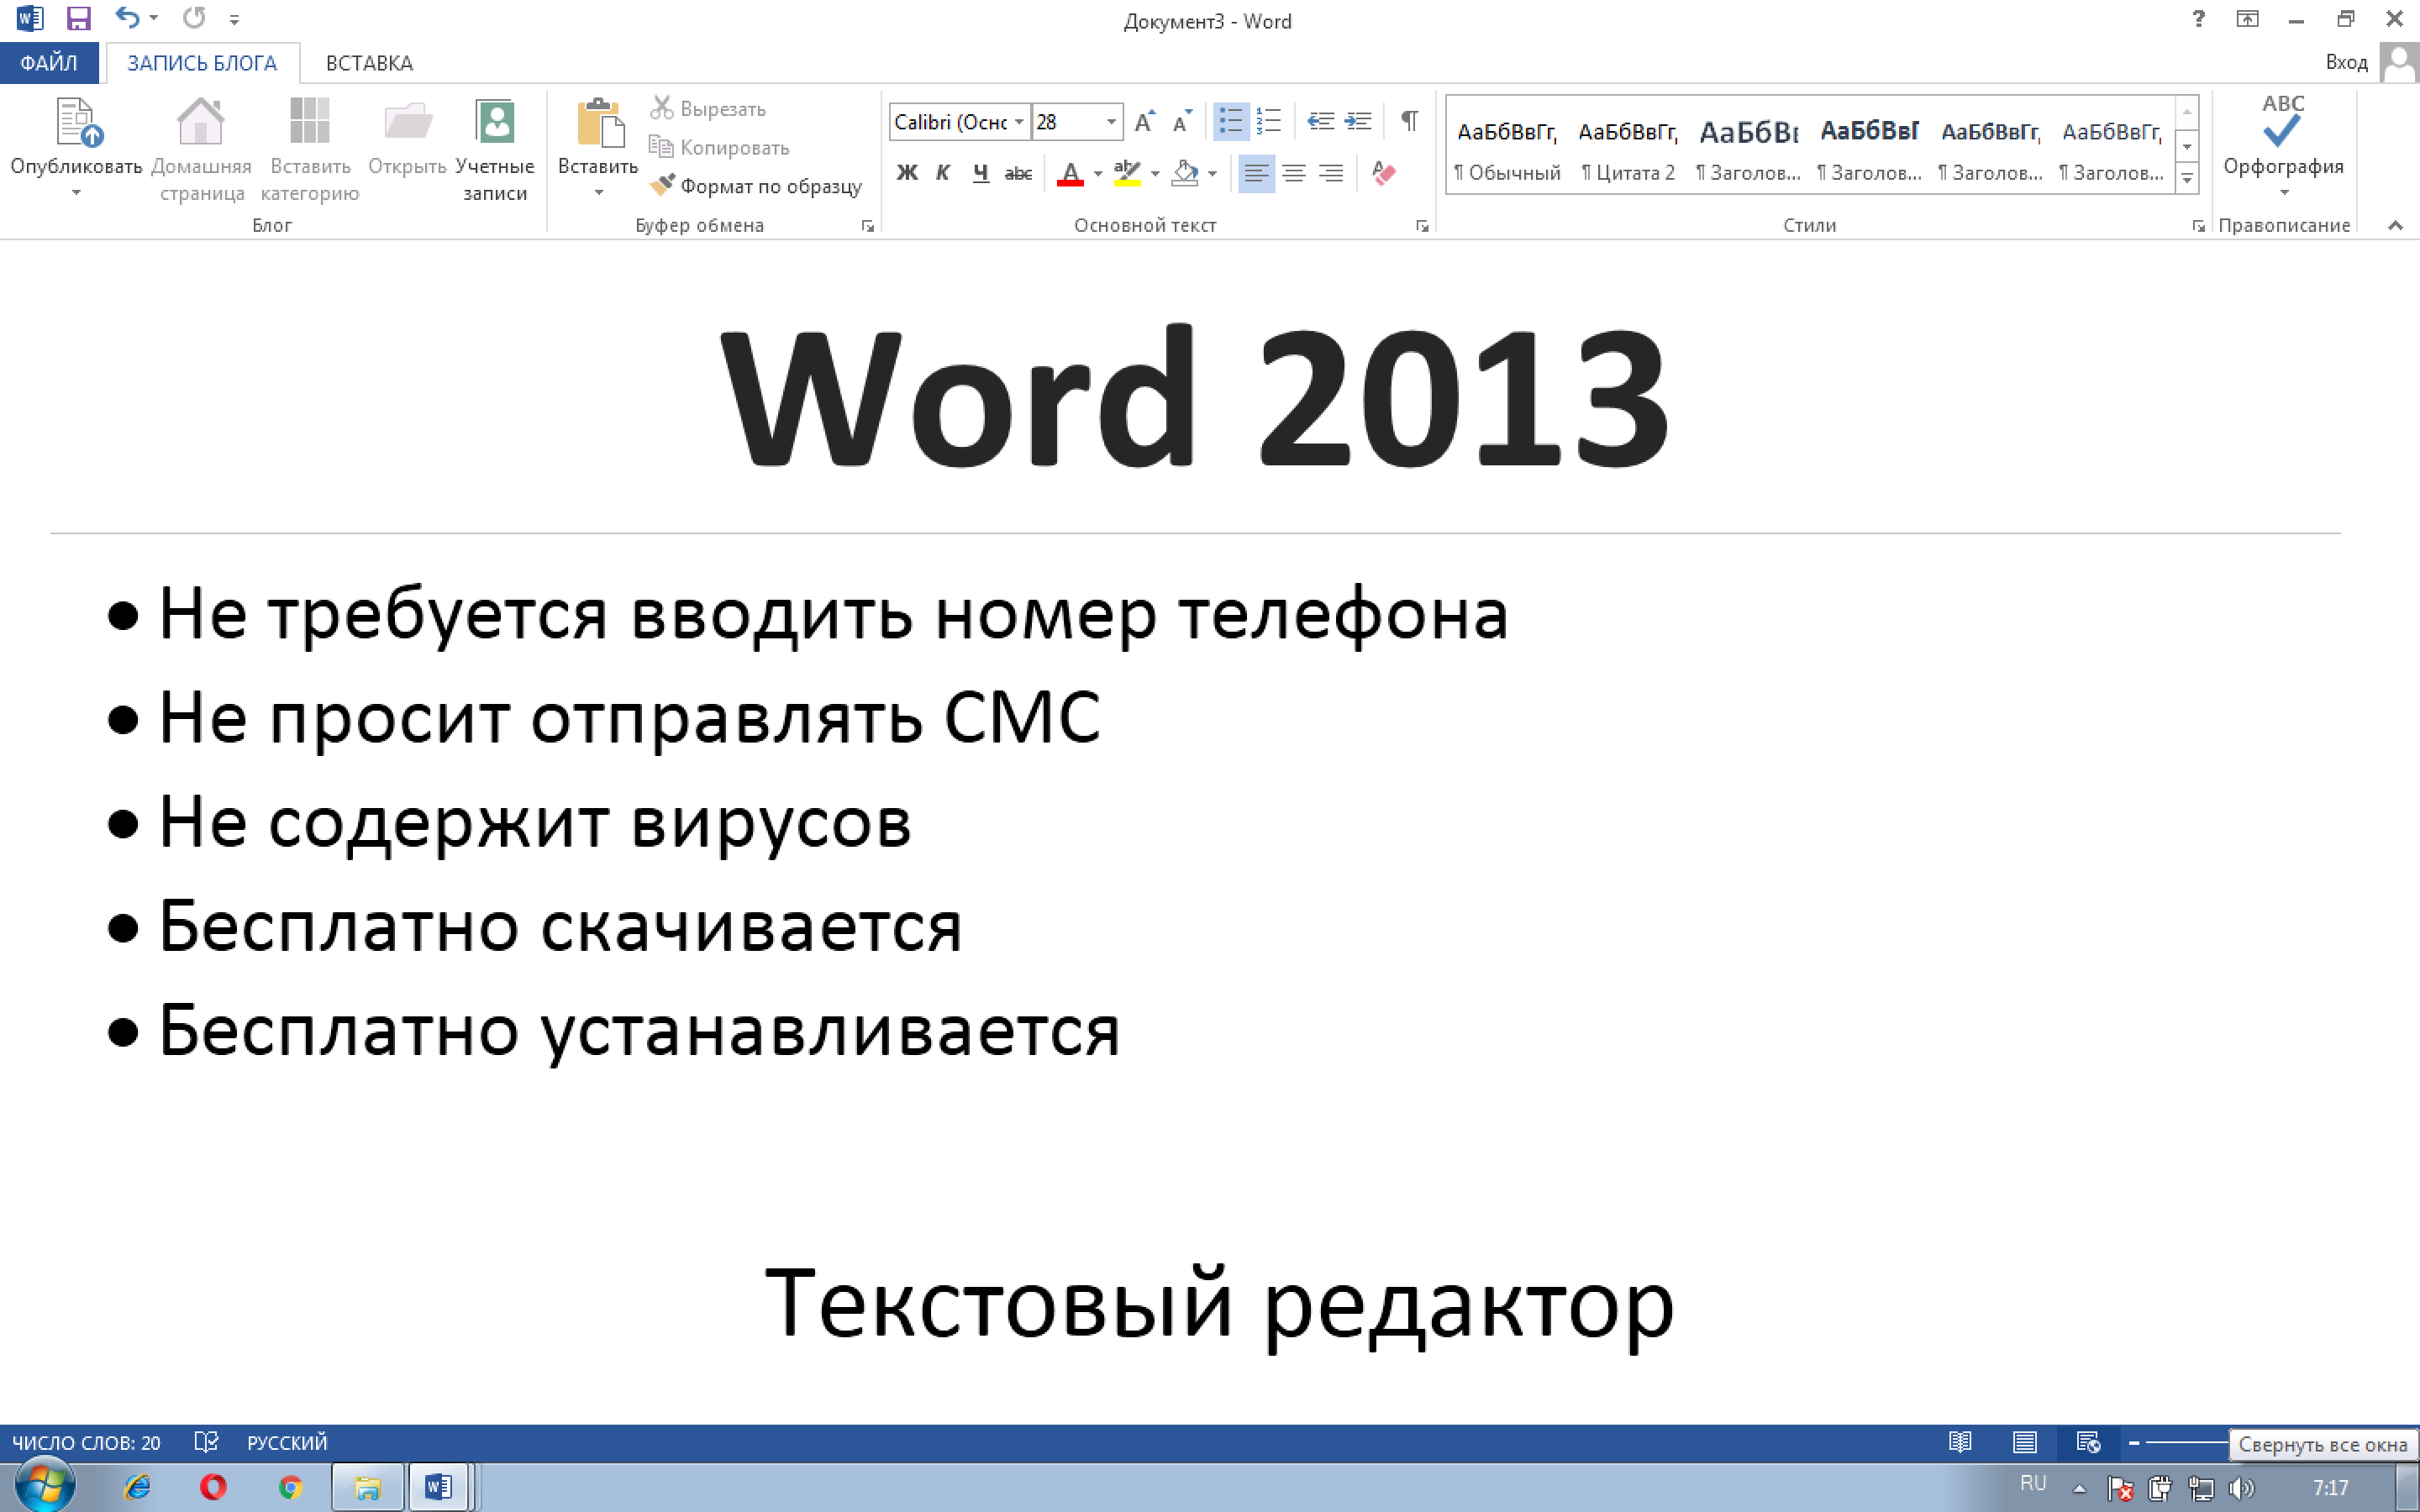 Microsoft office word 2013 download free ideal. Vistalist. Co.